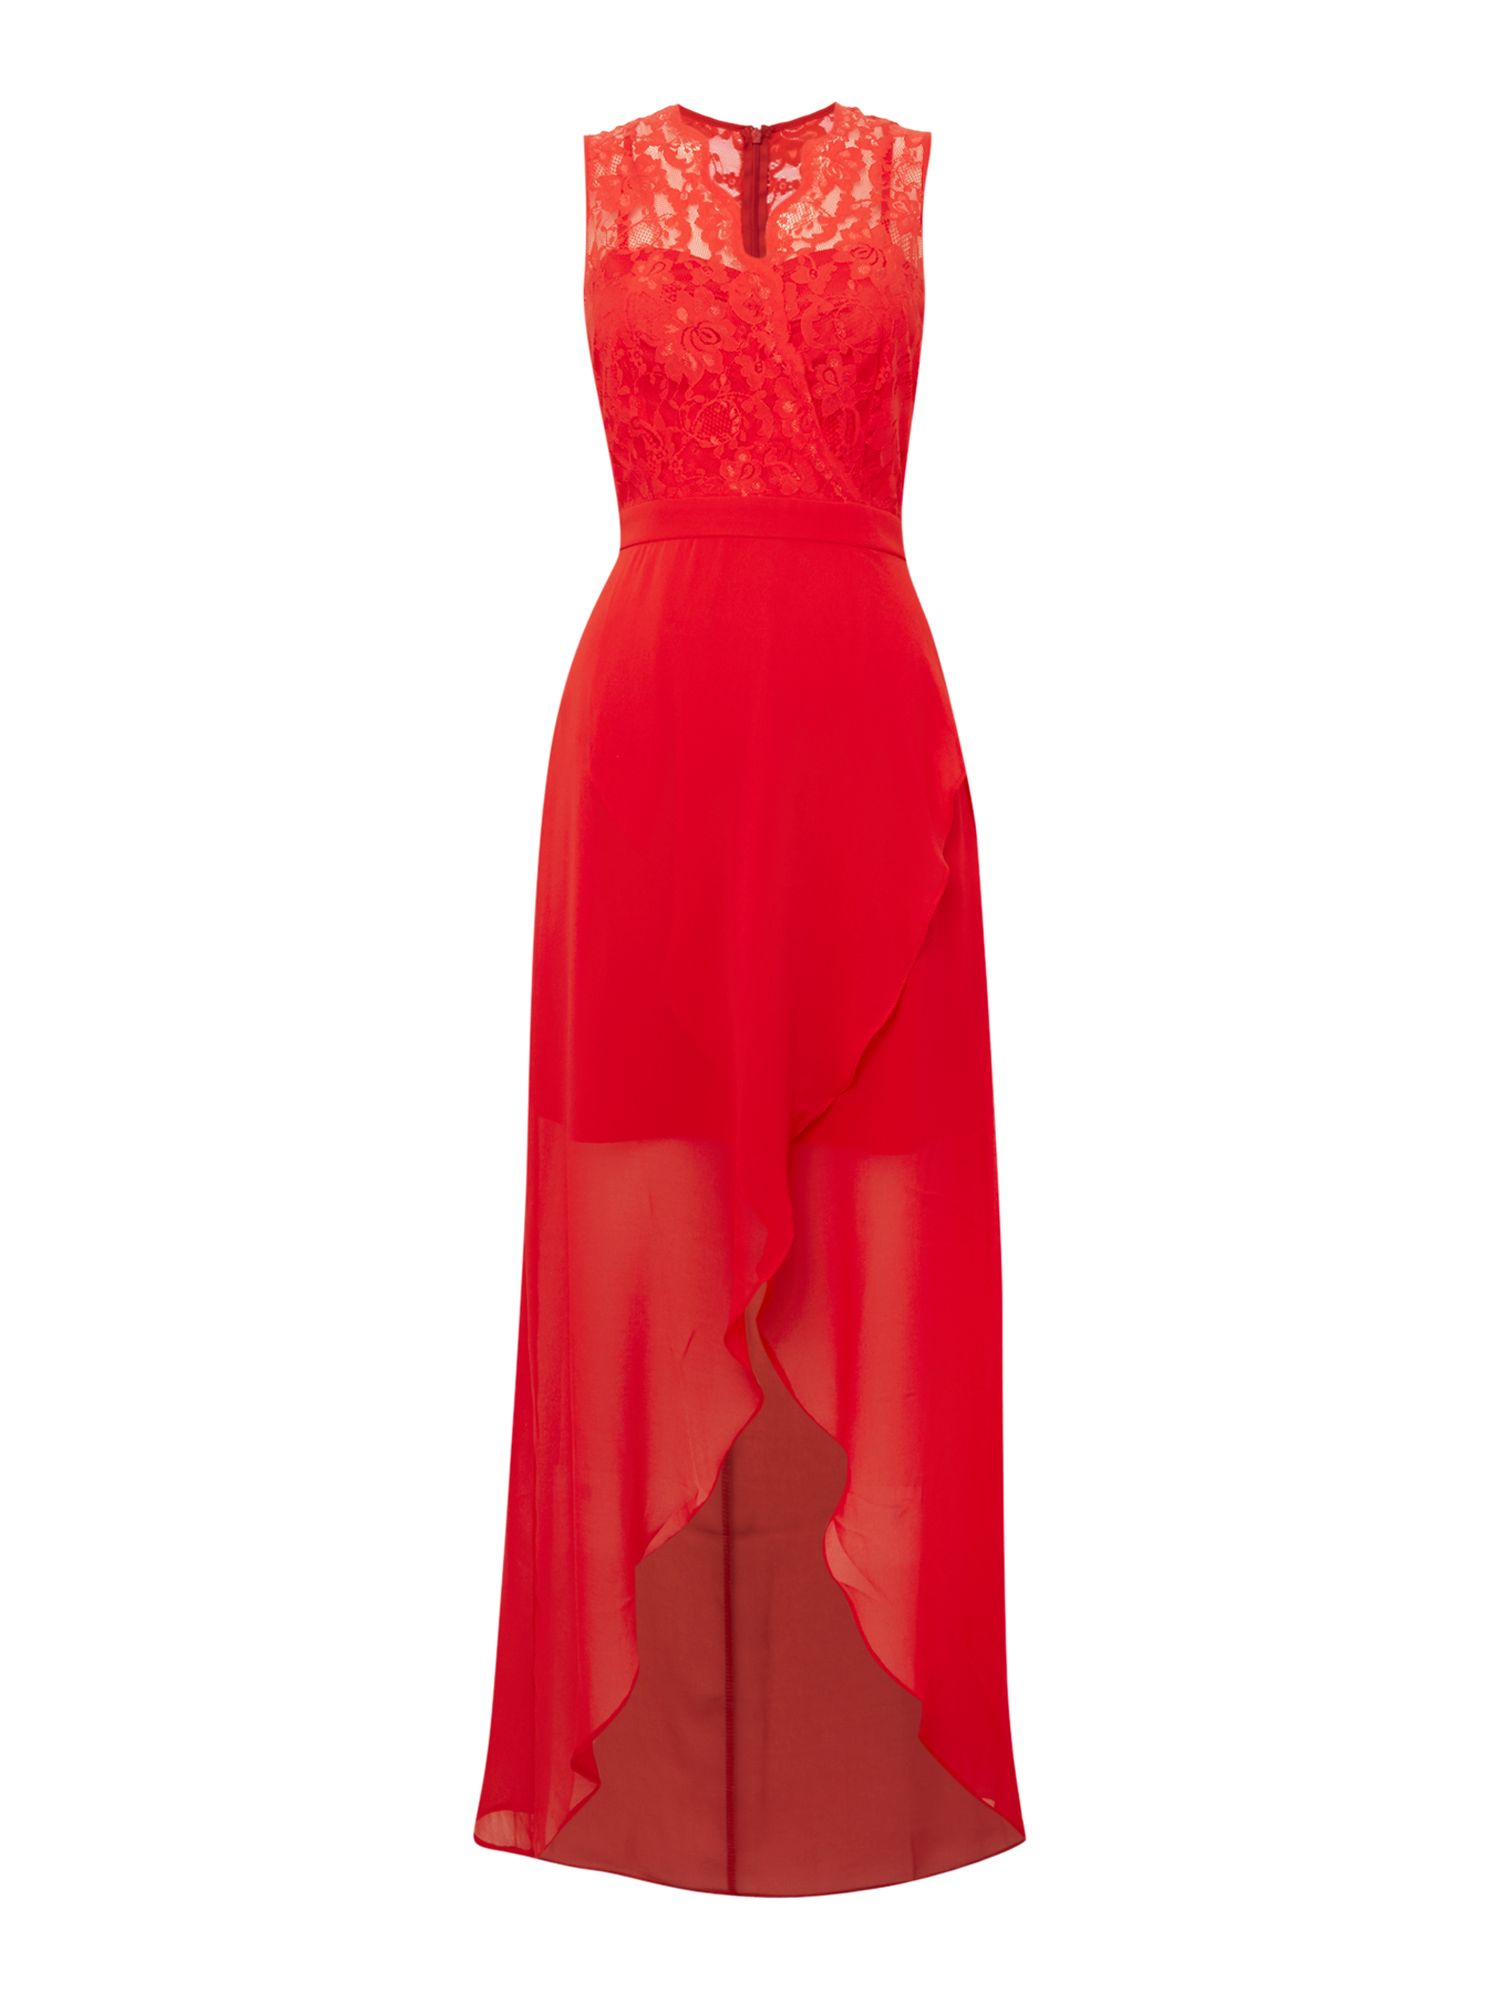 Elise Ryan Elise Ryan Lace Top High Low Maxi Dress, Red